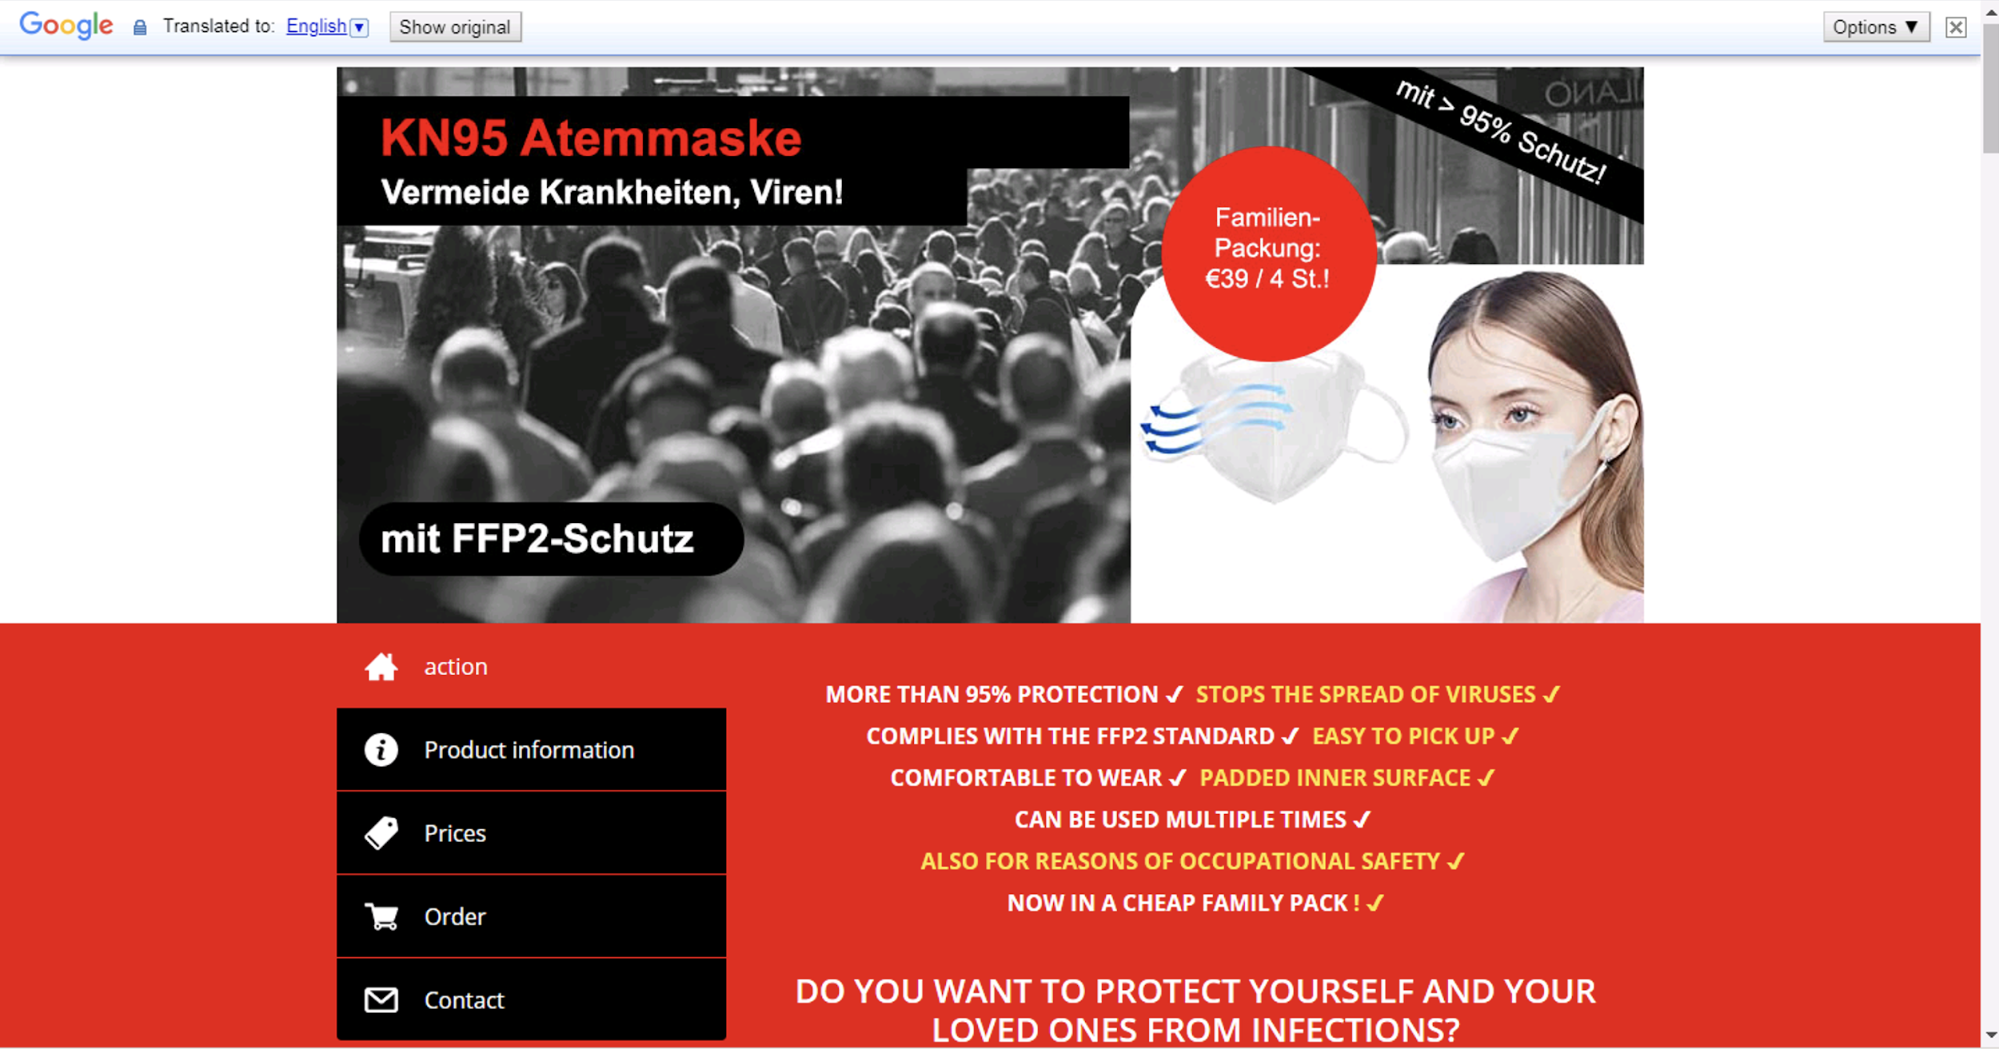 This is an example of a scam website, translated from German to English. The website purportedly offers PPE.